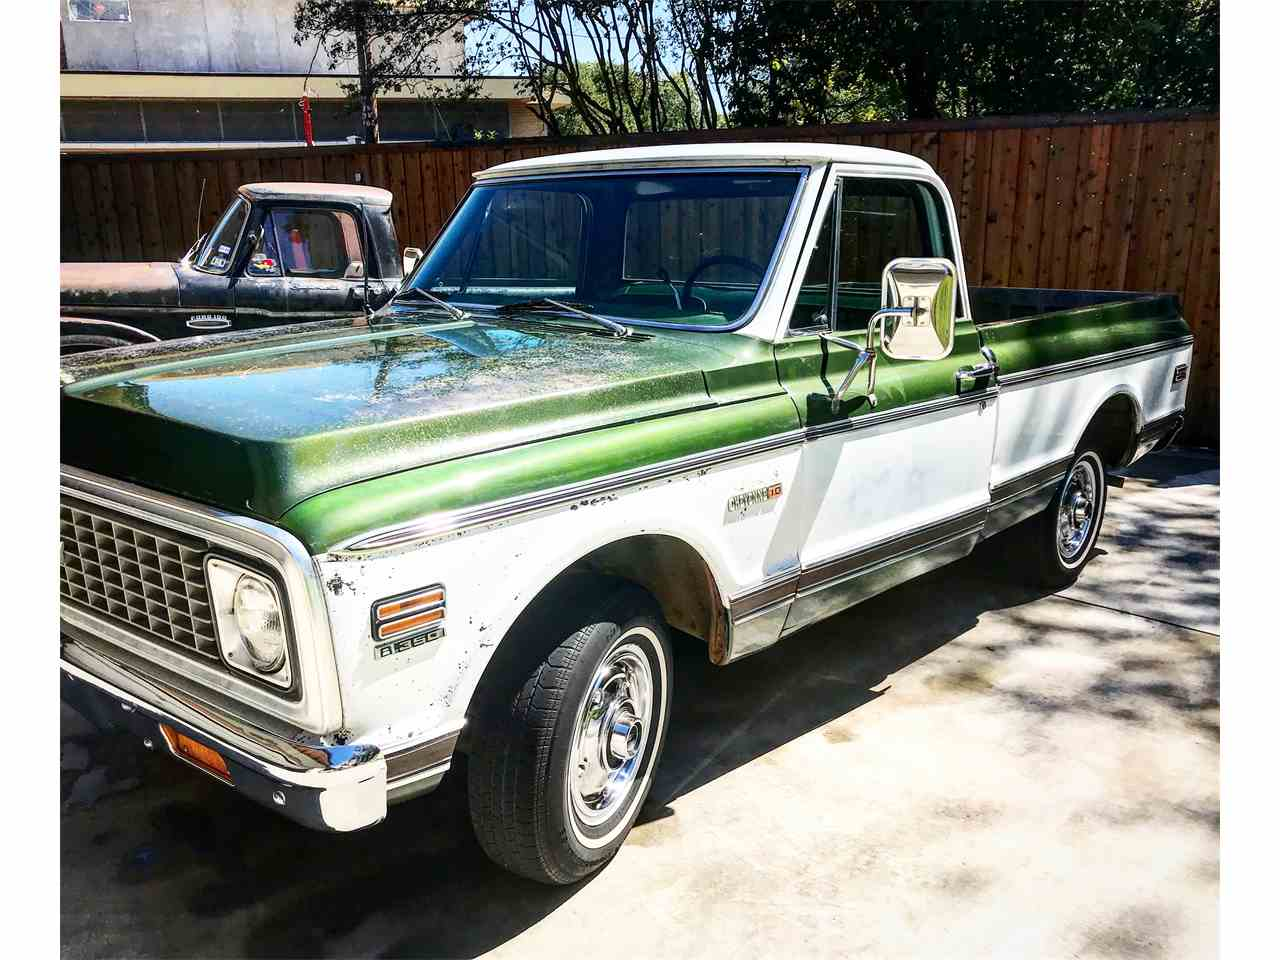 Large Picture of Classic 1972 C10 located in Texas - $16,000.00 Offered by a Private Seller - M6NX